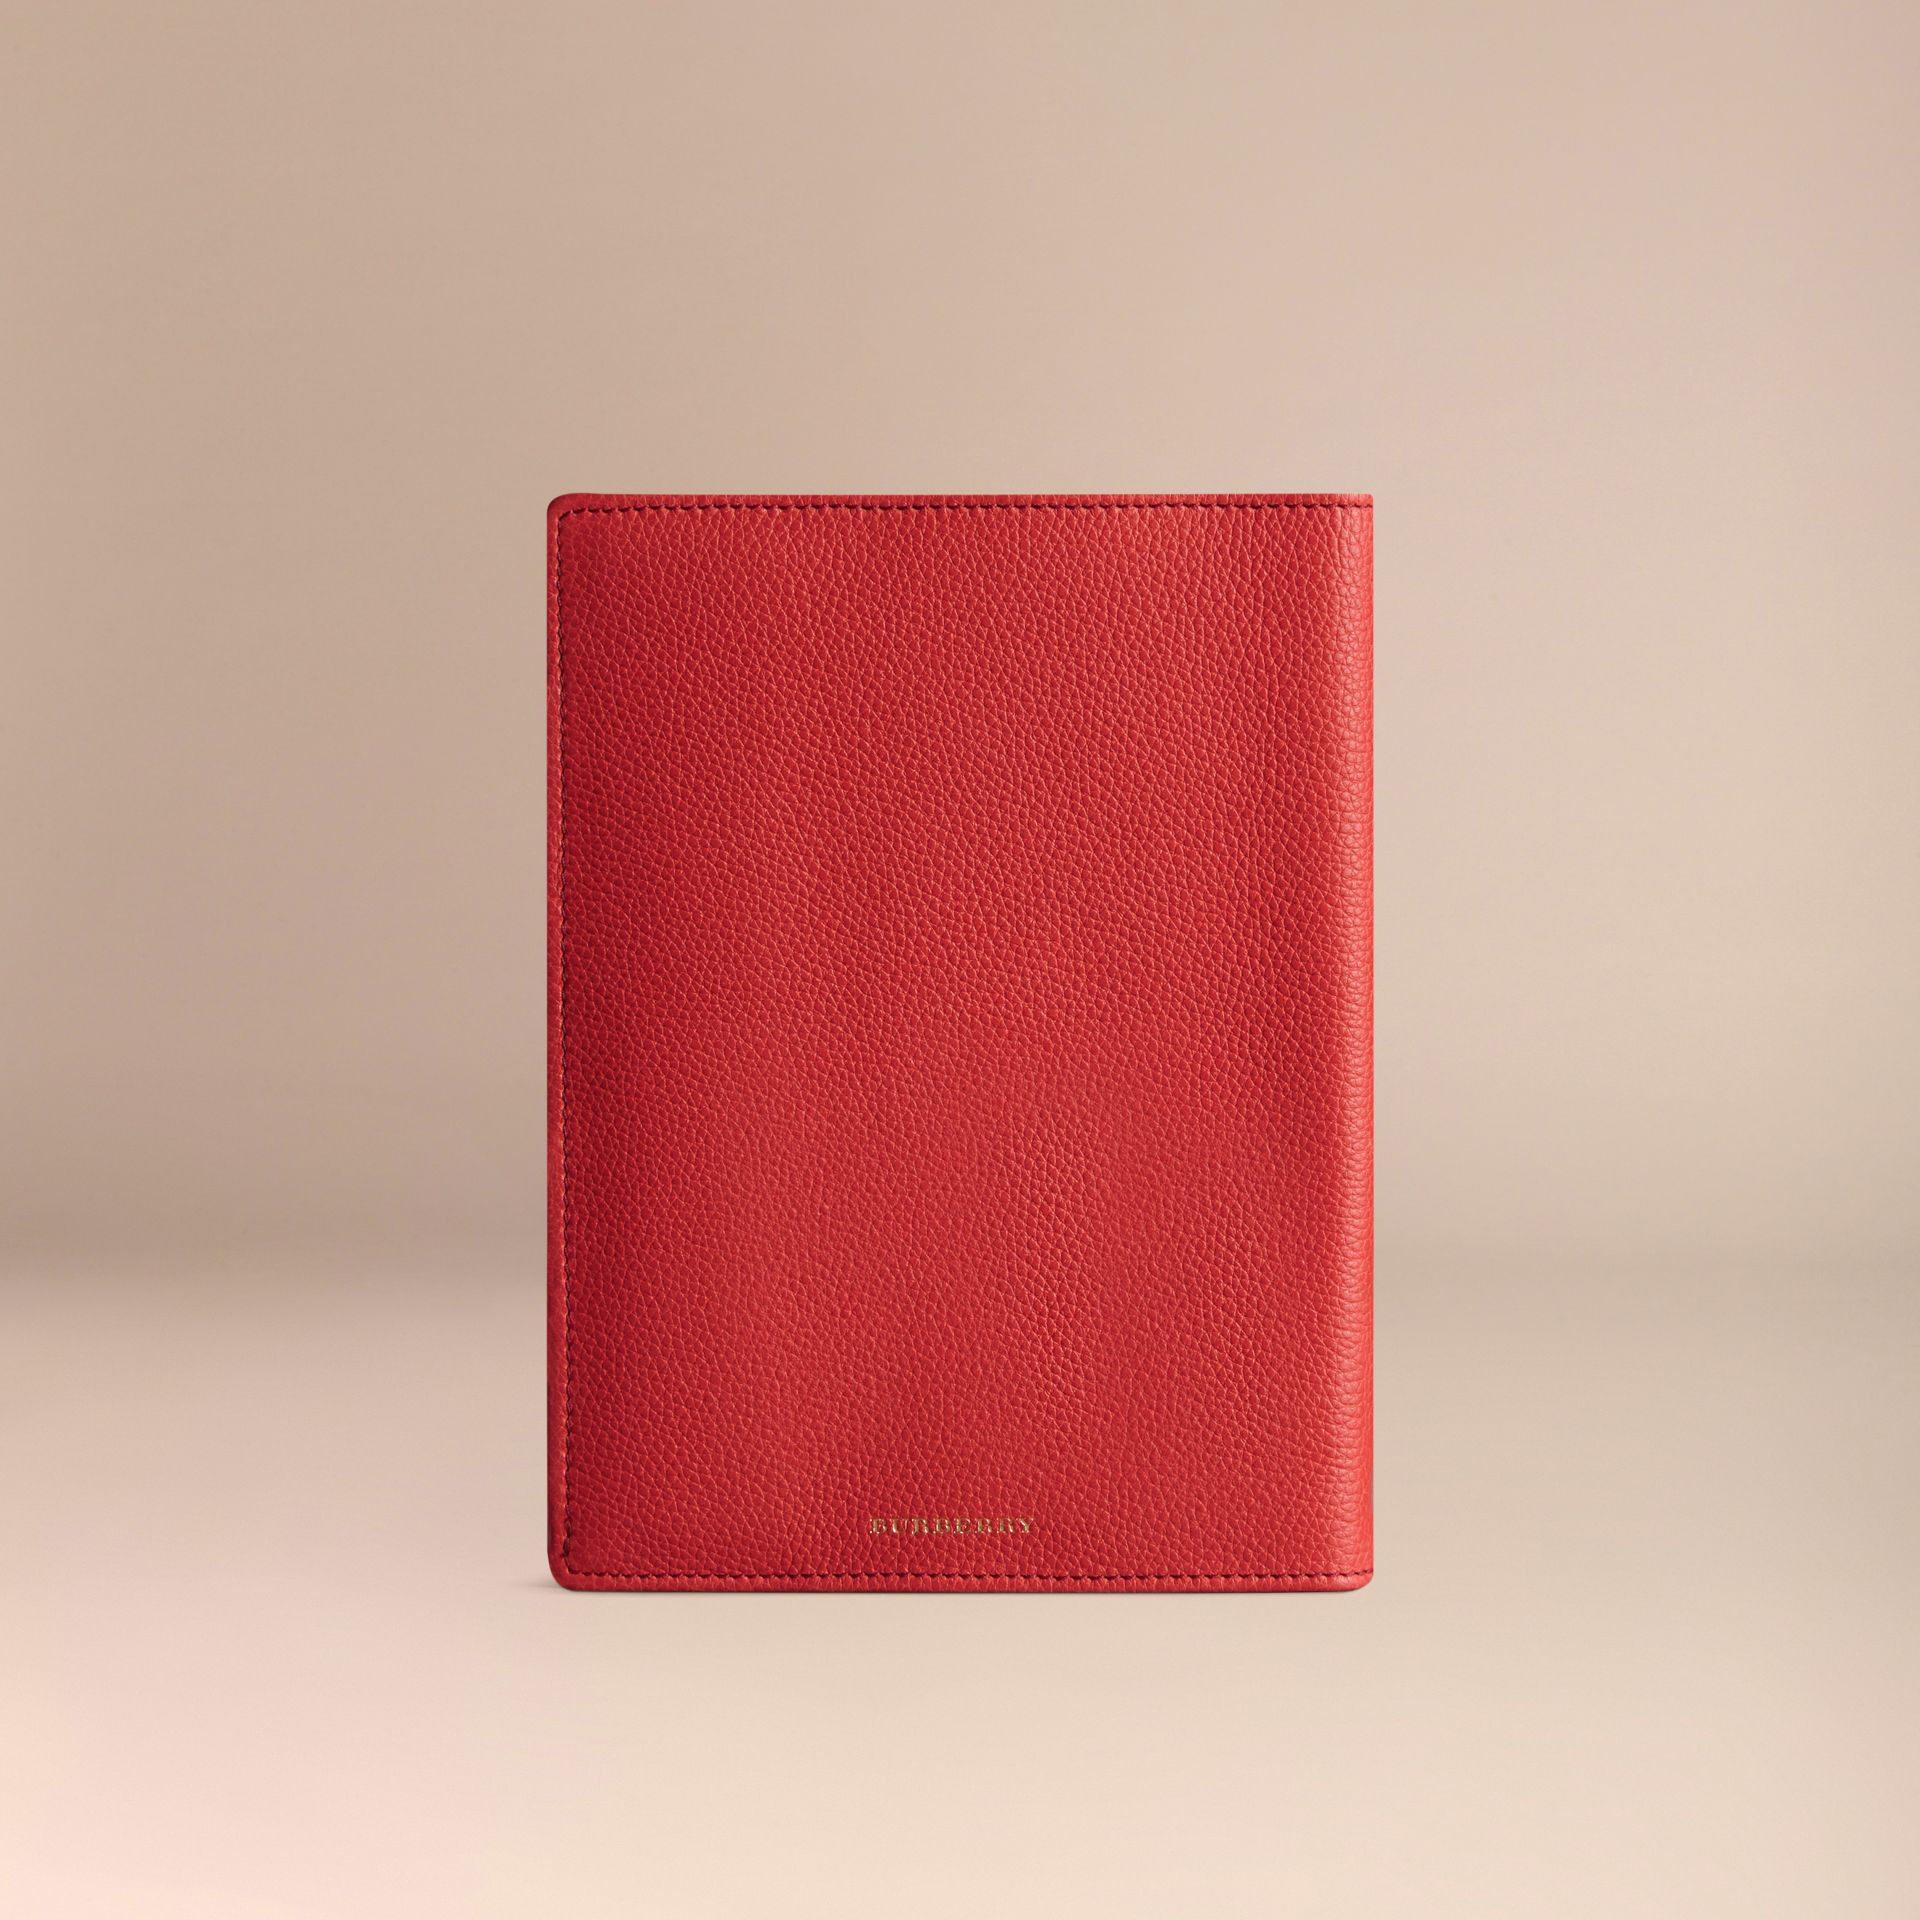 Grainy Leather 18 Month 2016/17 A5 Diary in Orange Red | Burberry - gallery image 3